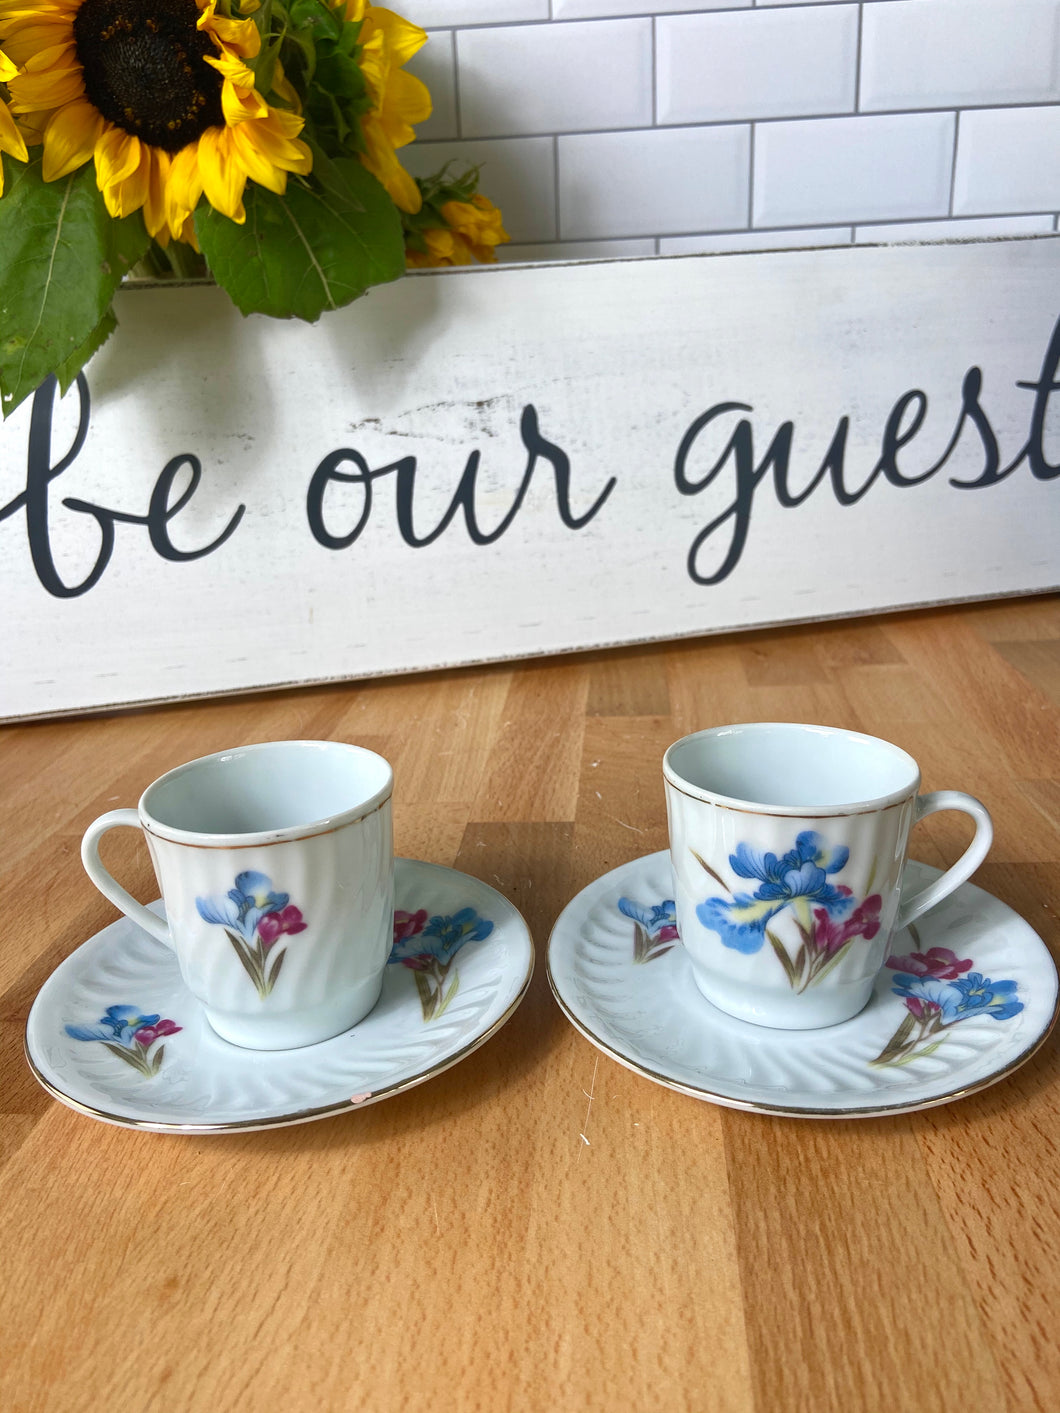 Beauty and the Beast Party Decoration: Candle Holding Teacup Duo